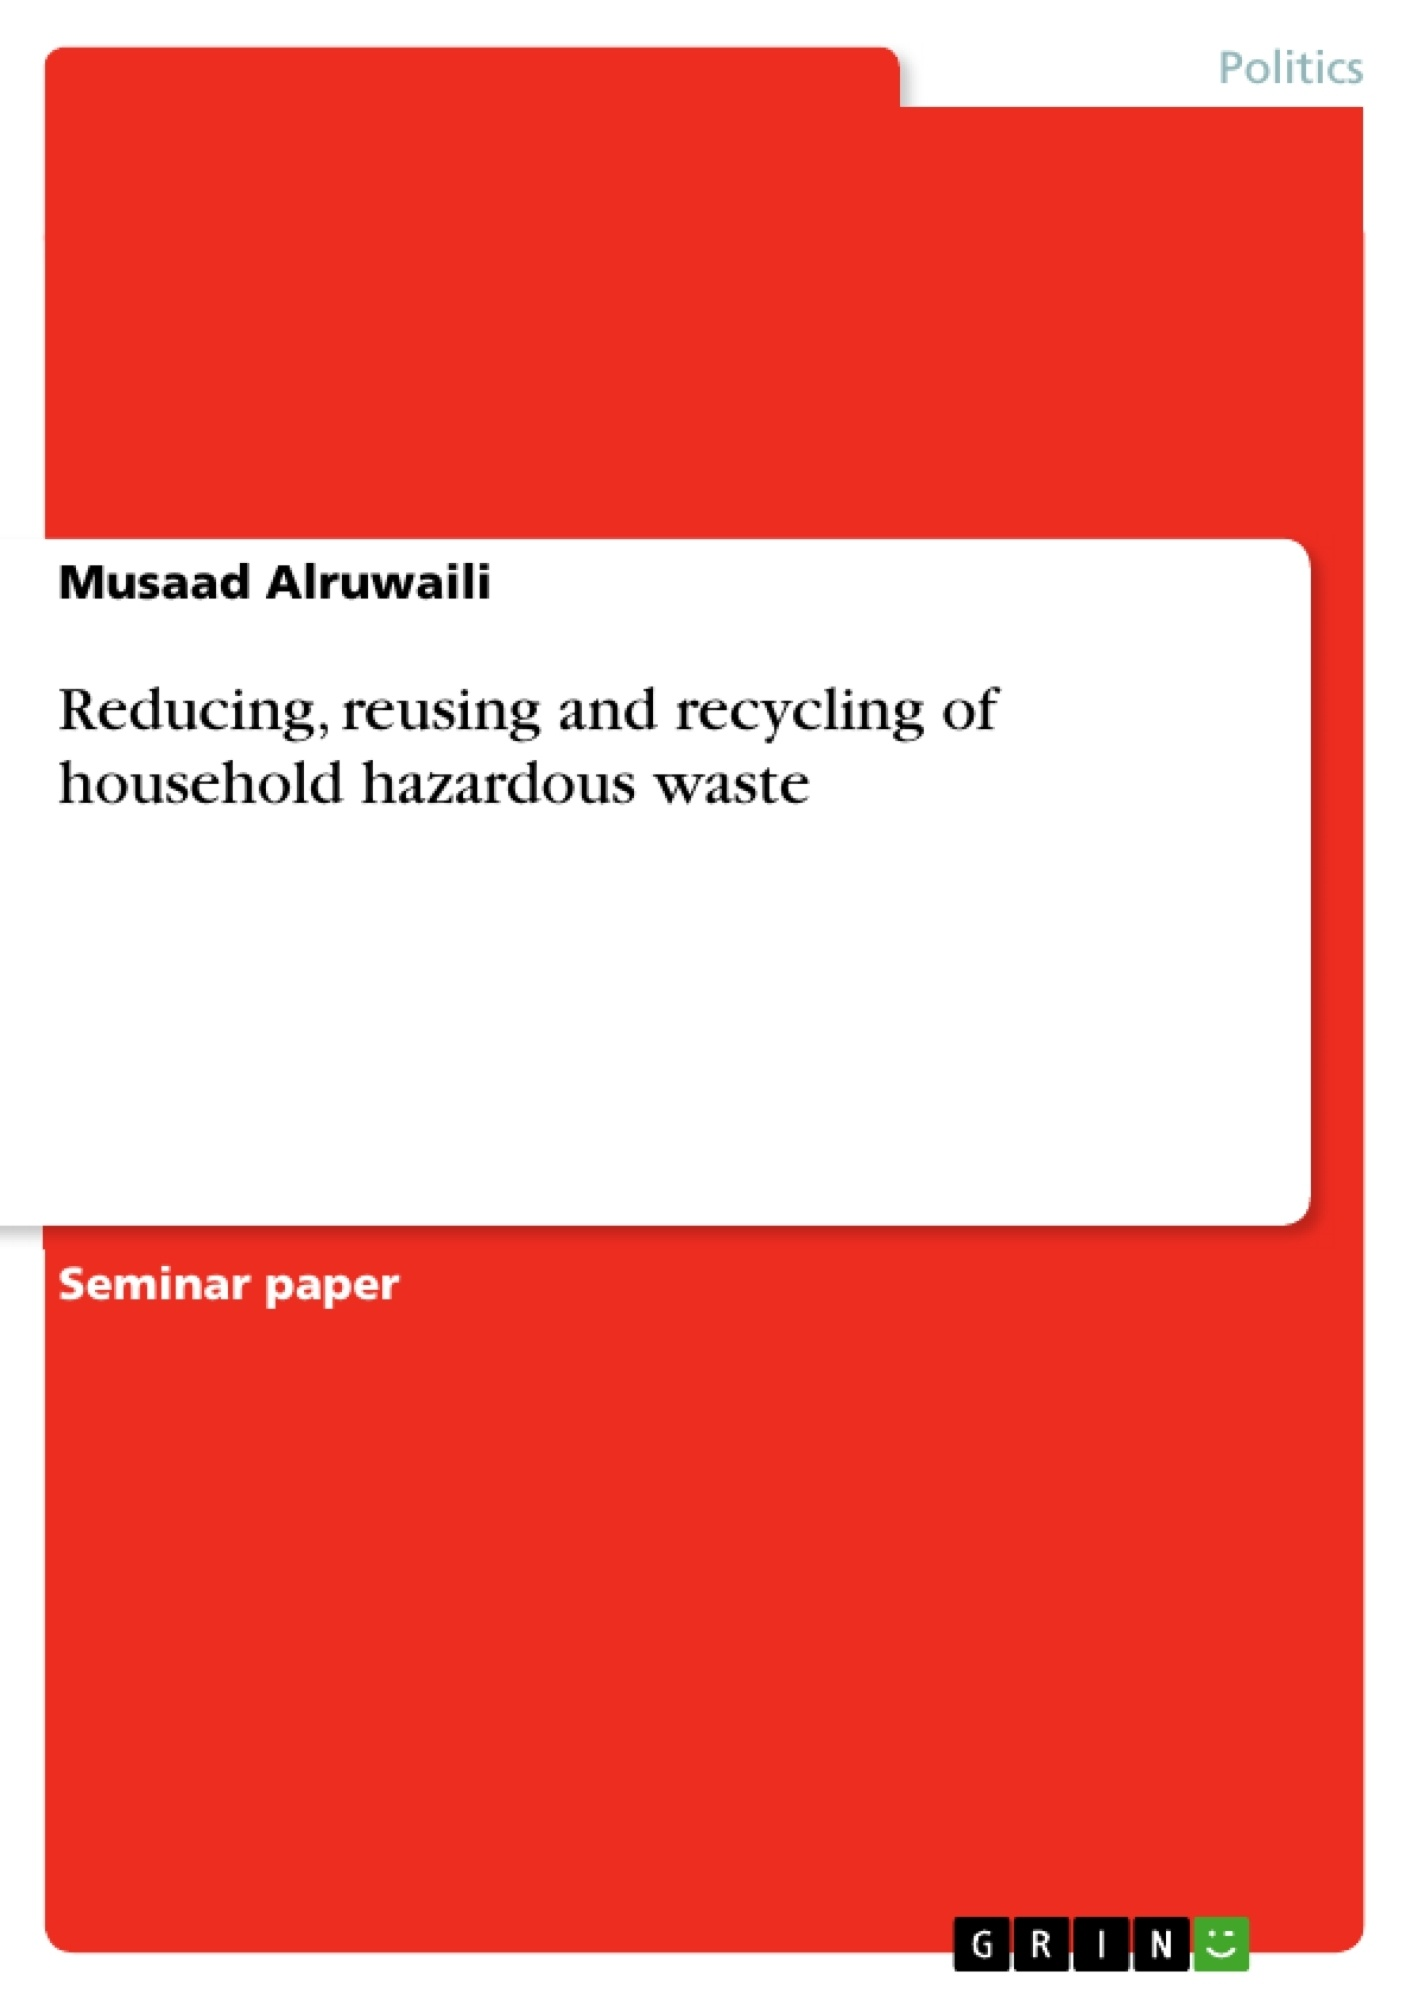 Title: Reducing, reusing and recycling of household hazardous waste